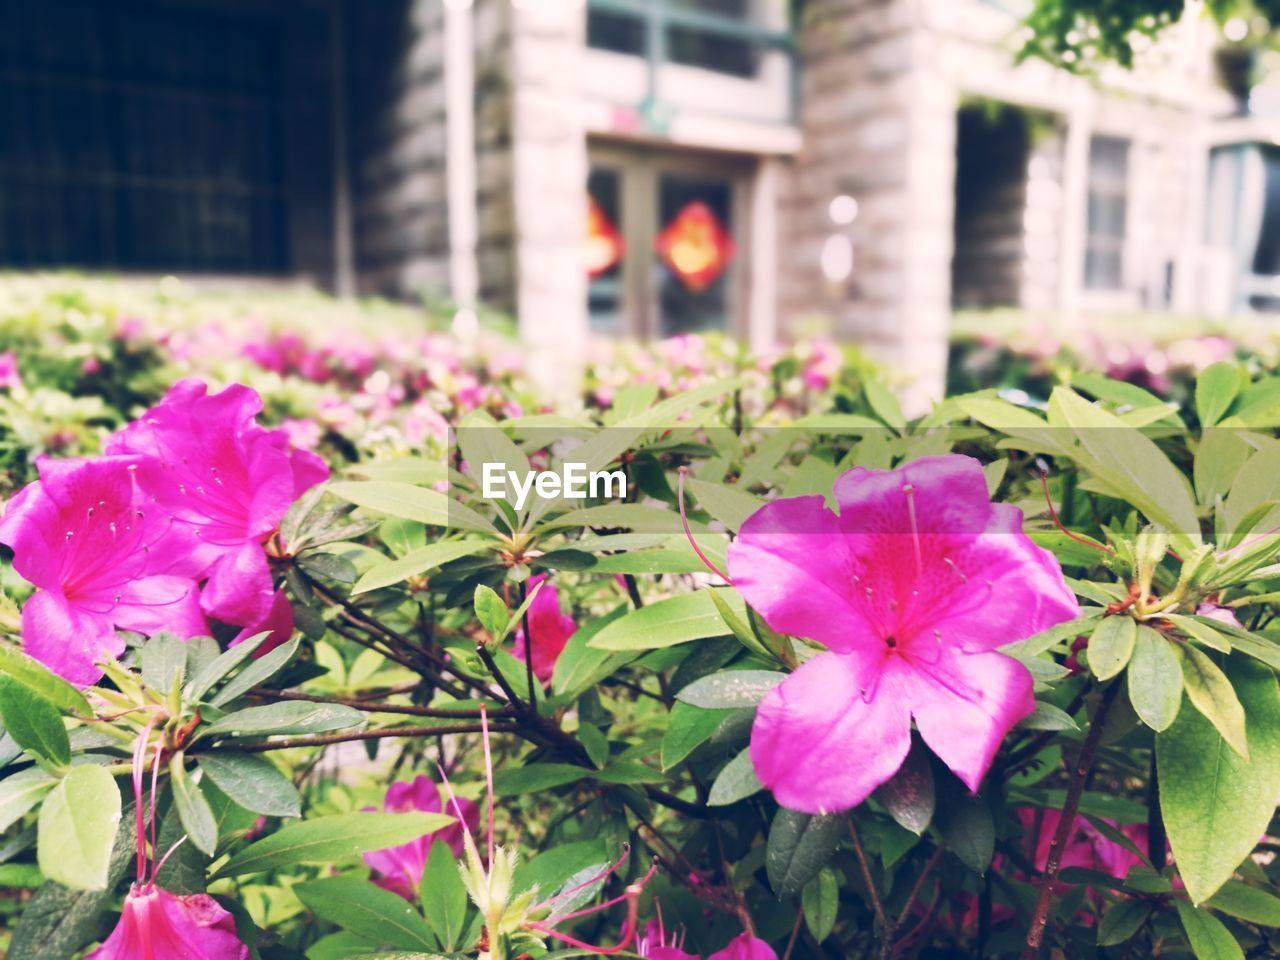 flower, growth, fragility, plant, flower head, petal, beauty in nature, nature, freshness, blooming, no people, leaf, outdoors, pink color, building exterior, day, architecture, focus on foreground, built structure, close-up, petunia, periwinkle